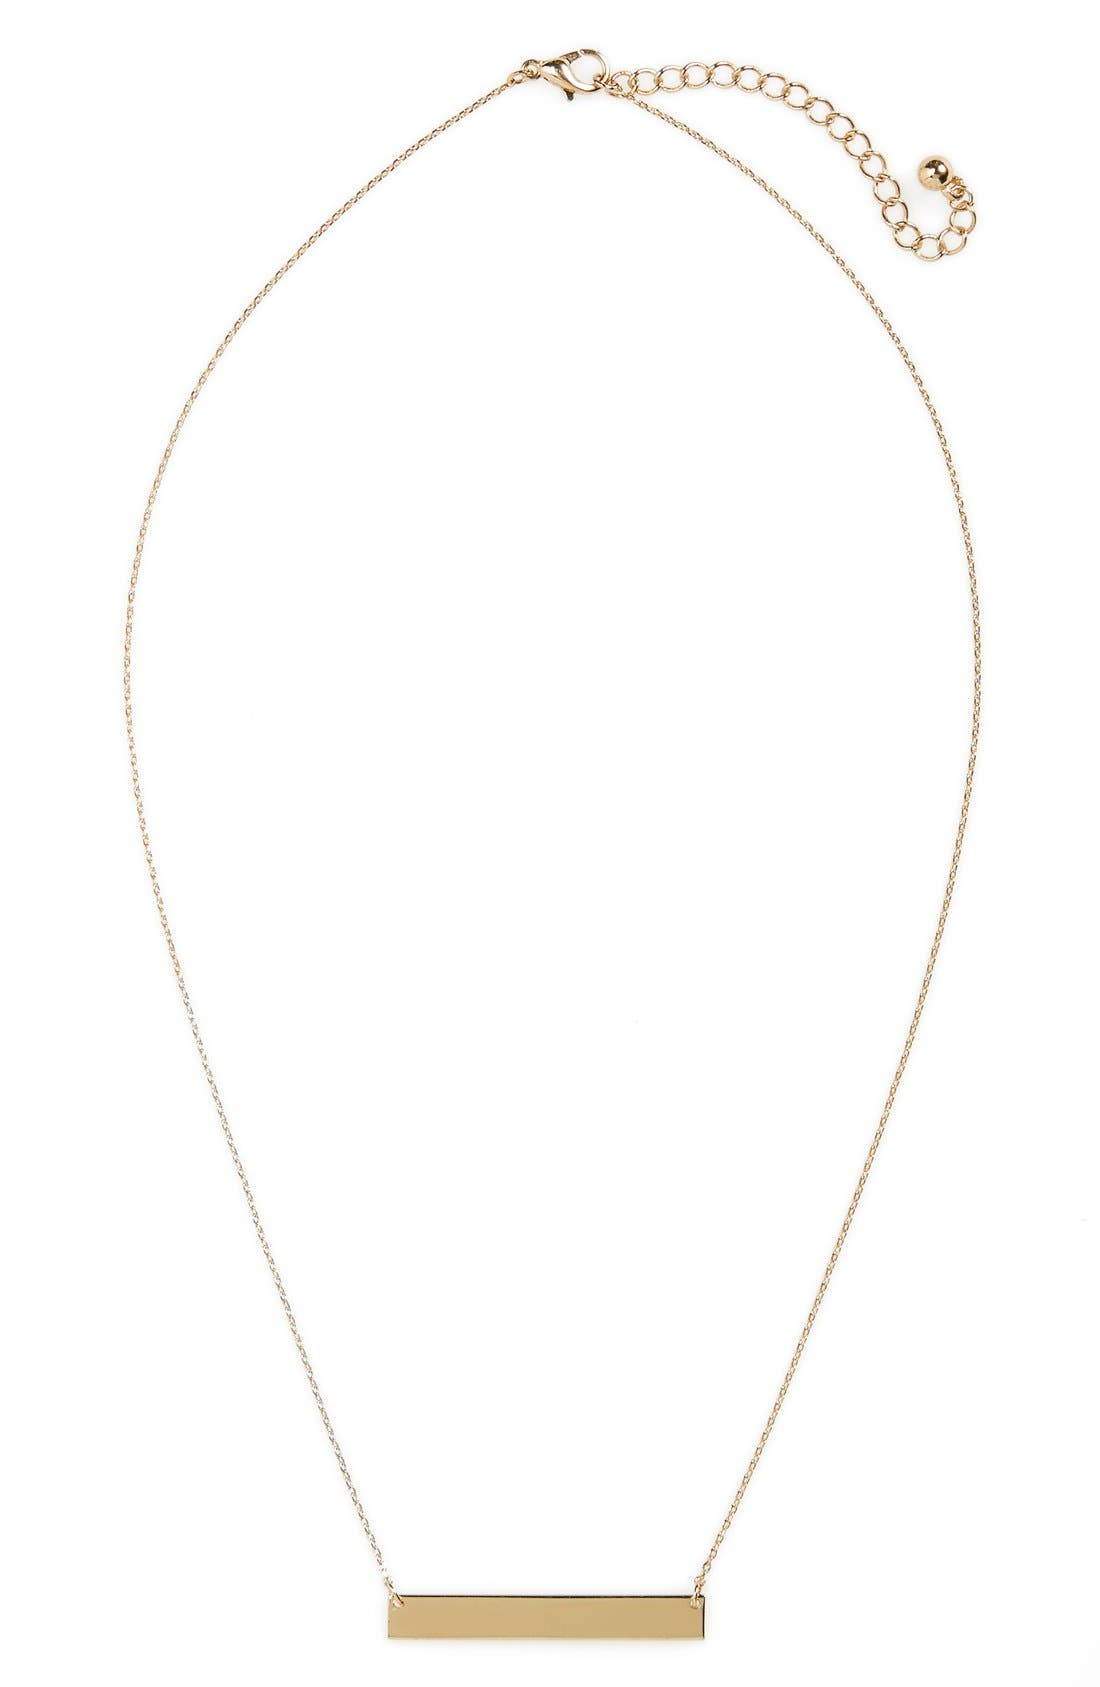 Bar Charm Necklace,                         Main,                         color, Gold